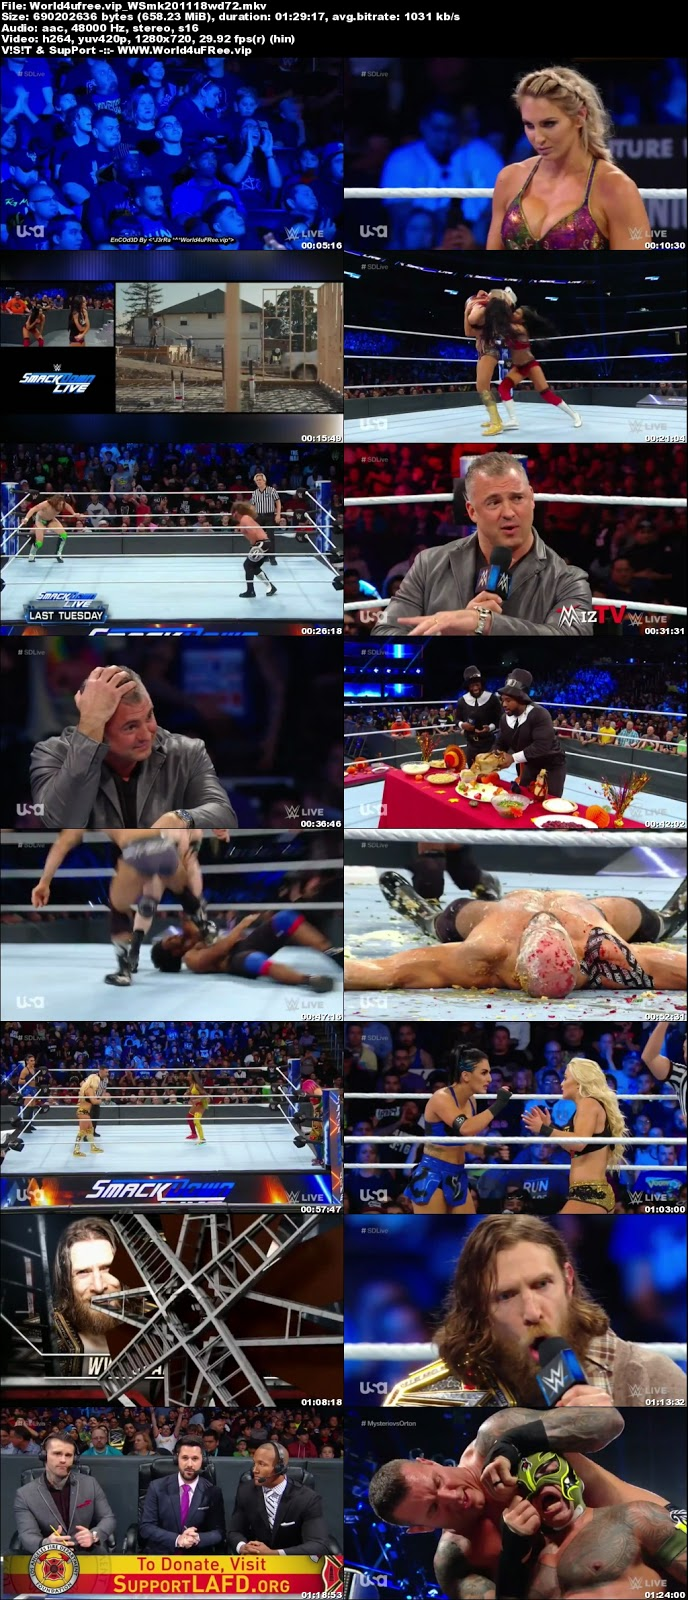 WWE Smackdown Live 20 NOVEMBER 2018 720p HDTV 600MB x264tv show wwe WWE Smackdown Live 23 OCTOBER 2018 HDTV 480p 650MB x264 compressed small size free download or watch online at world4ufree.vip